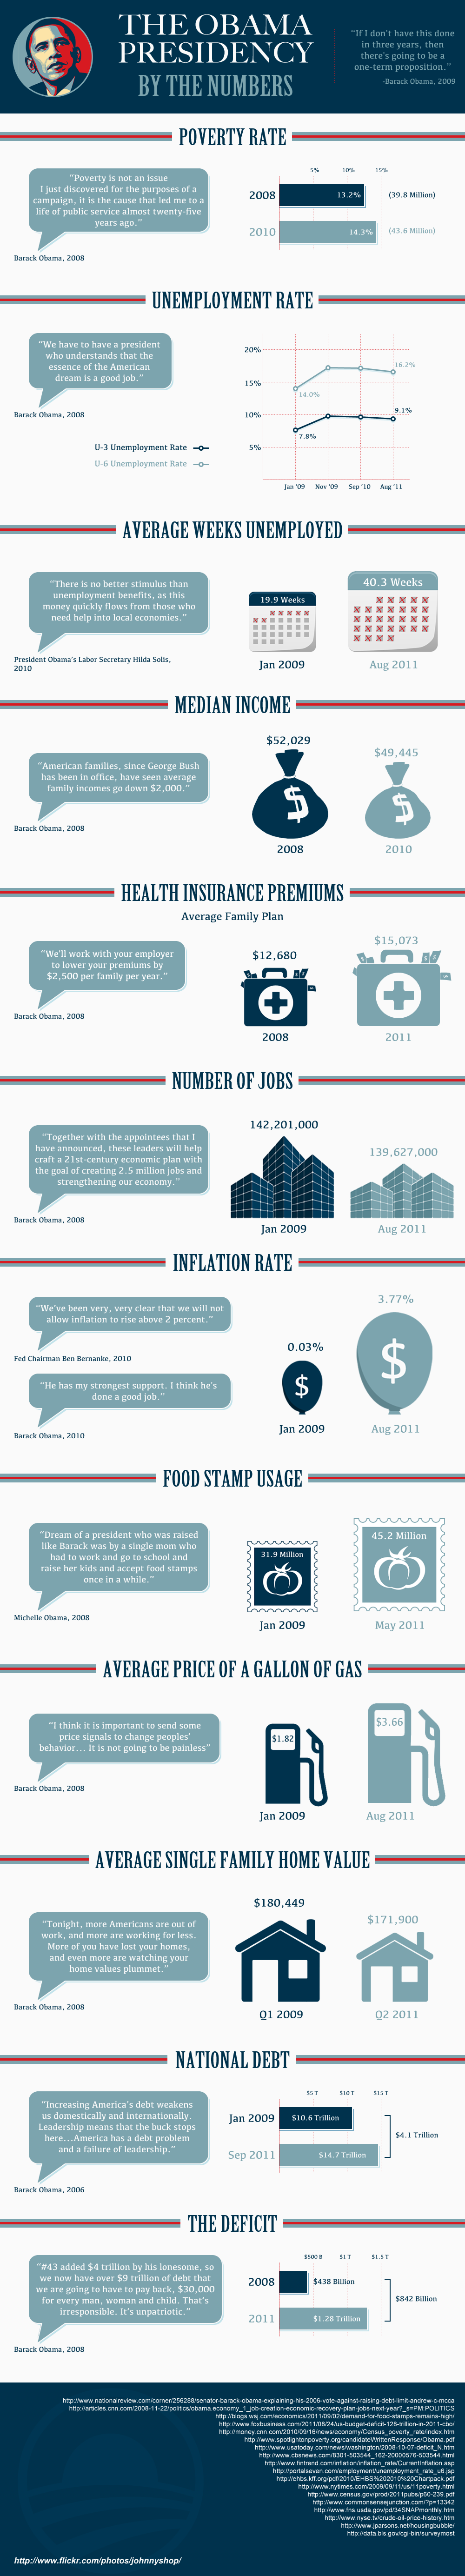 [Infographic] The Obama Presidency - By The Numbers